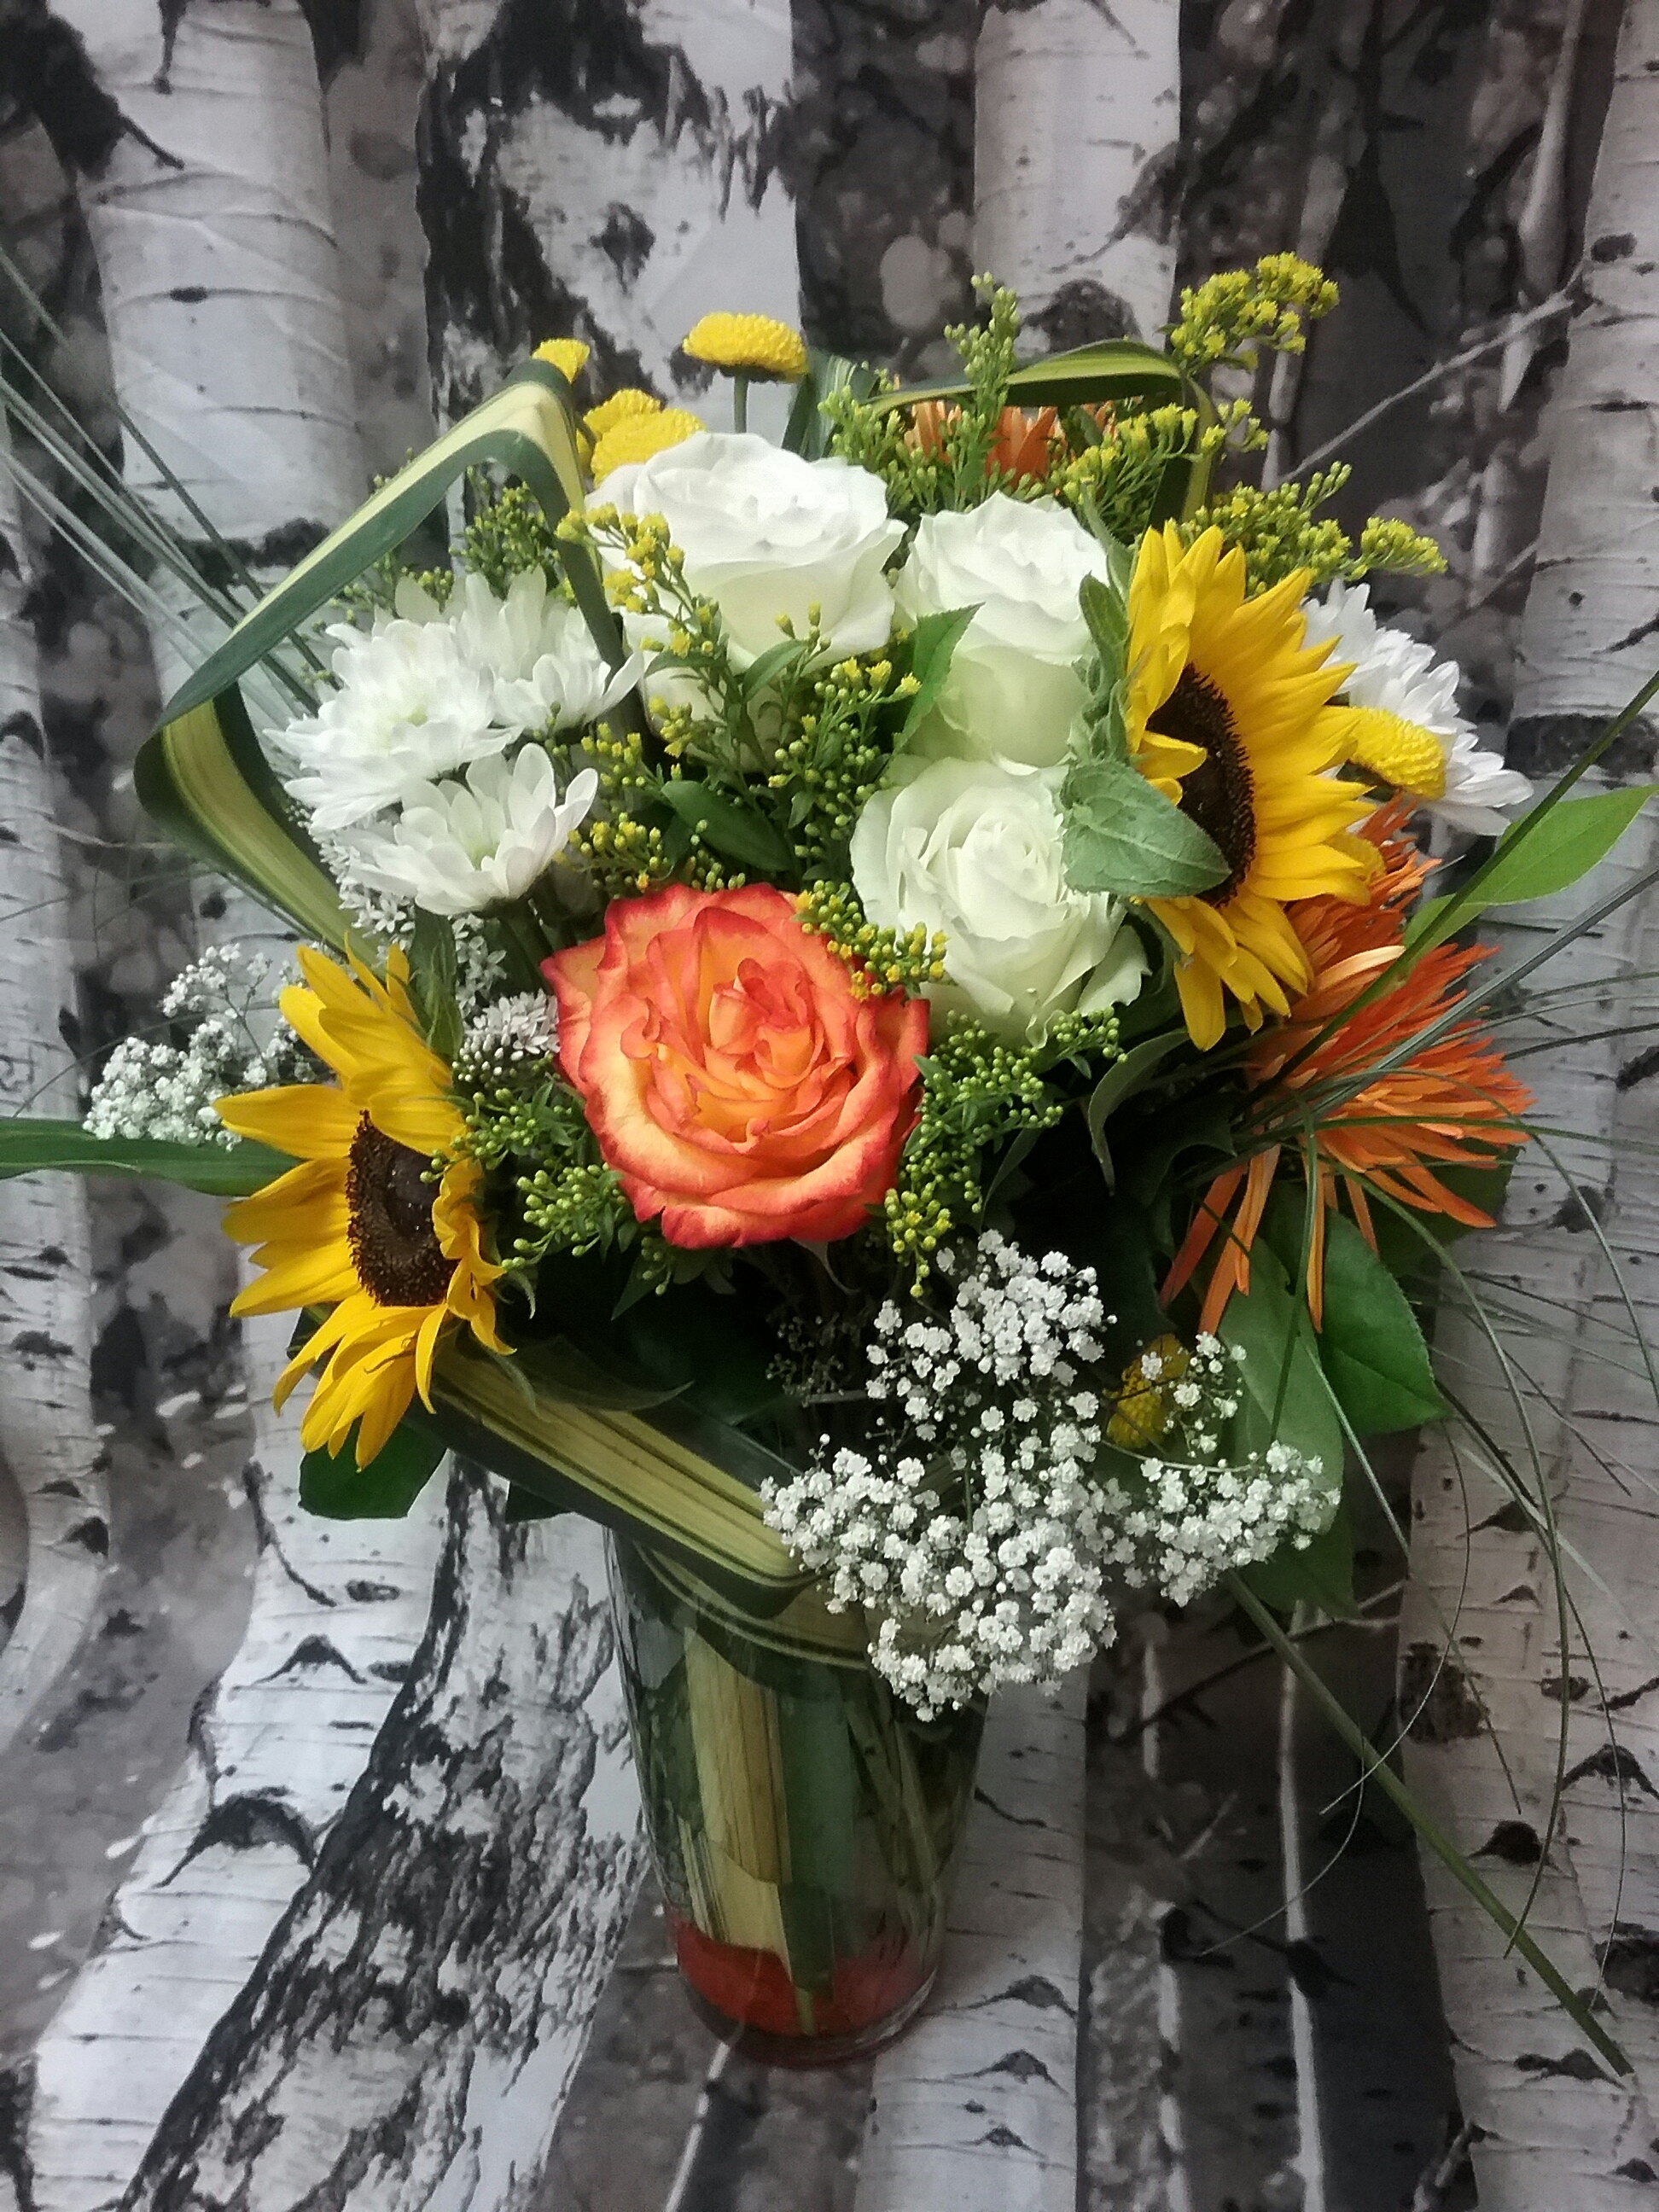 sunflowers, roses, chrysanthemums,solidago, gypsophile